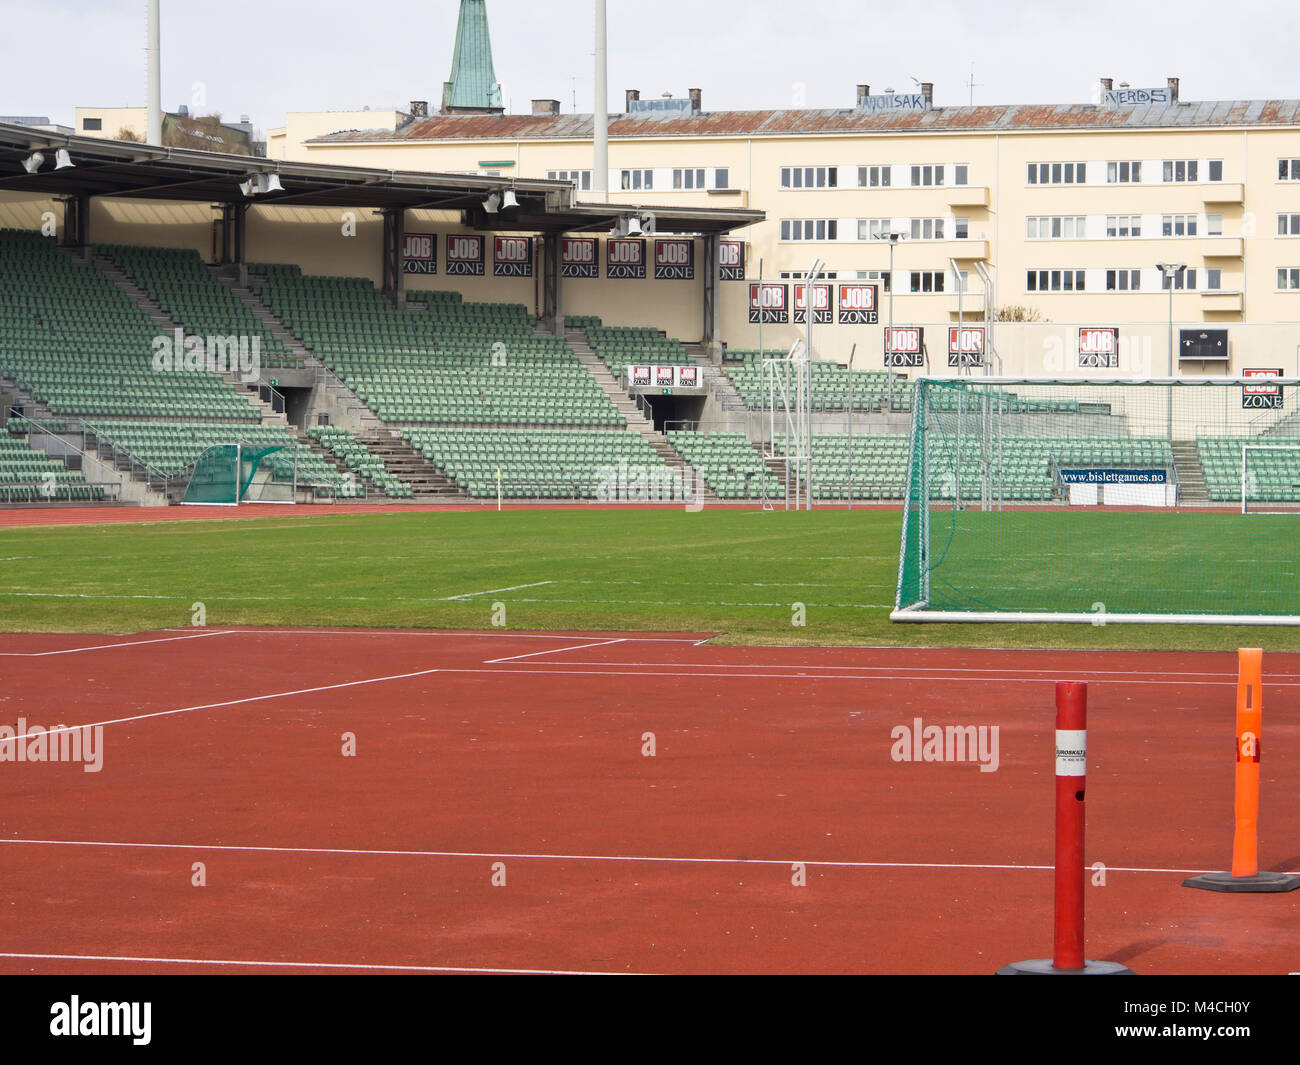 Bislett stadion (stadium) in Oslo Norway famous for the annual Bislett Games, an athletics event with world stars, - Stock Image